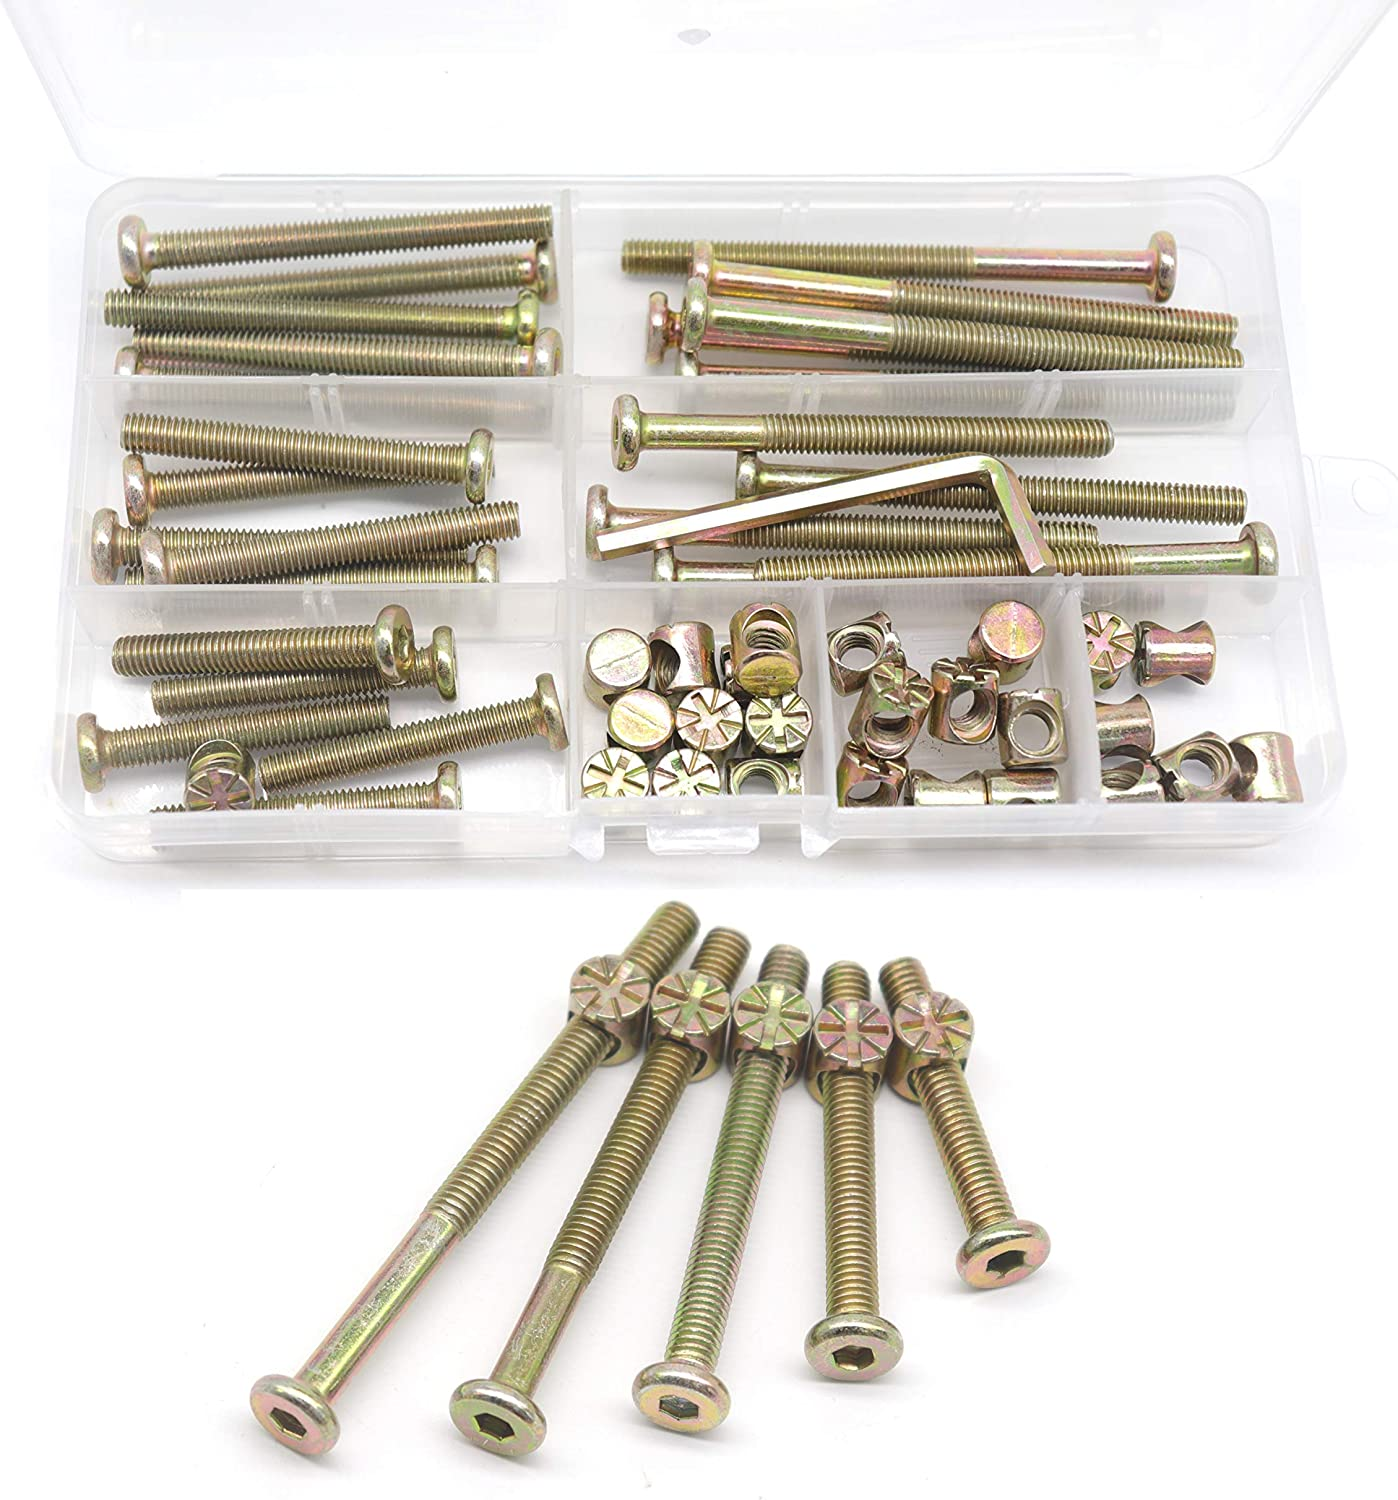 Crib Screws Cots Nicked Plated M6 /× 40//50//60//70//80mm Hex Socket Head Cap Crib Baby Bed Bolt and Barrel Nuts with 1 x Allen Wrench Perfect for Furniture Swpeet 100Pcs Crib Hardware Screws